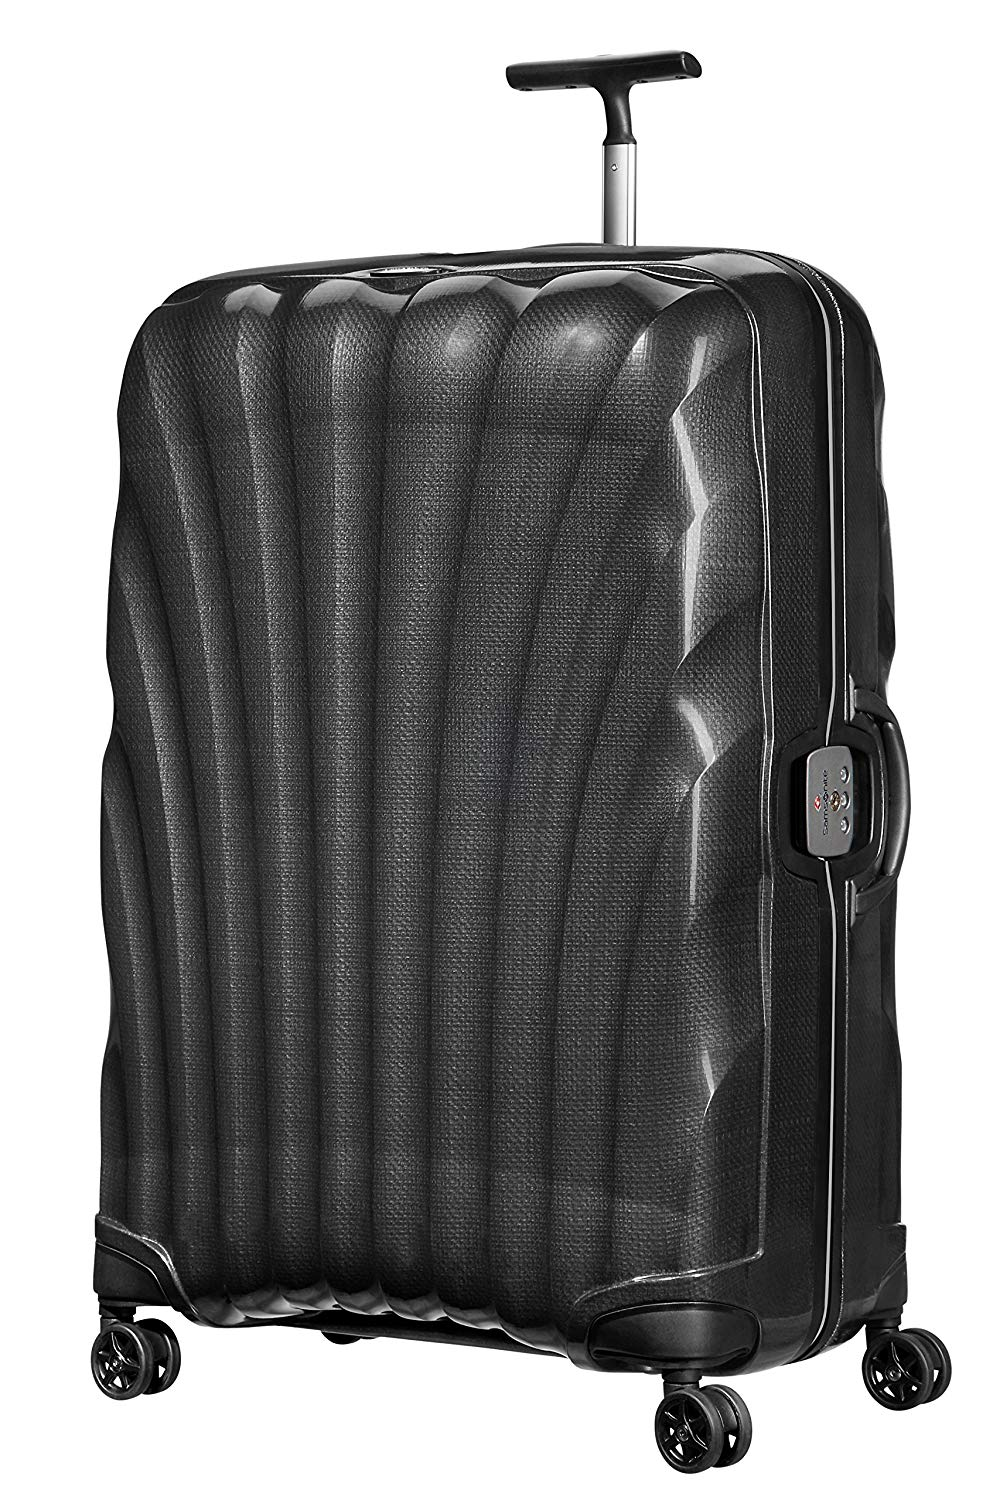 SAMSONITE Lite-Locked Spinner 81/30 Koffer, 81 cm, 122 L, Black